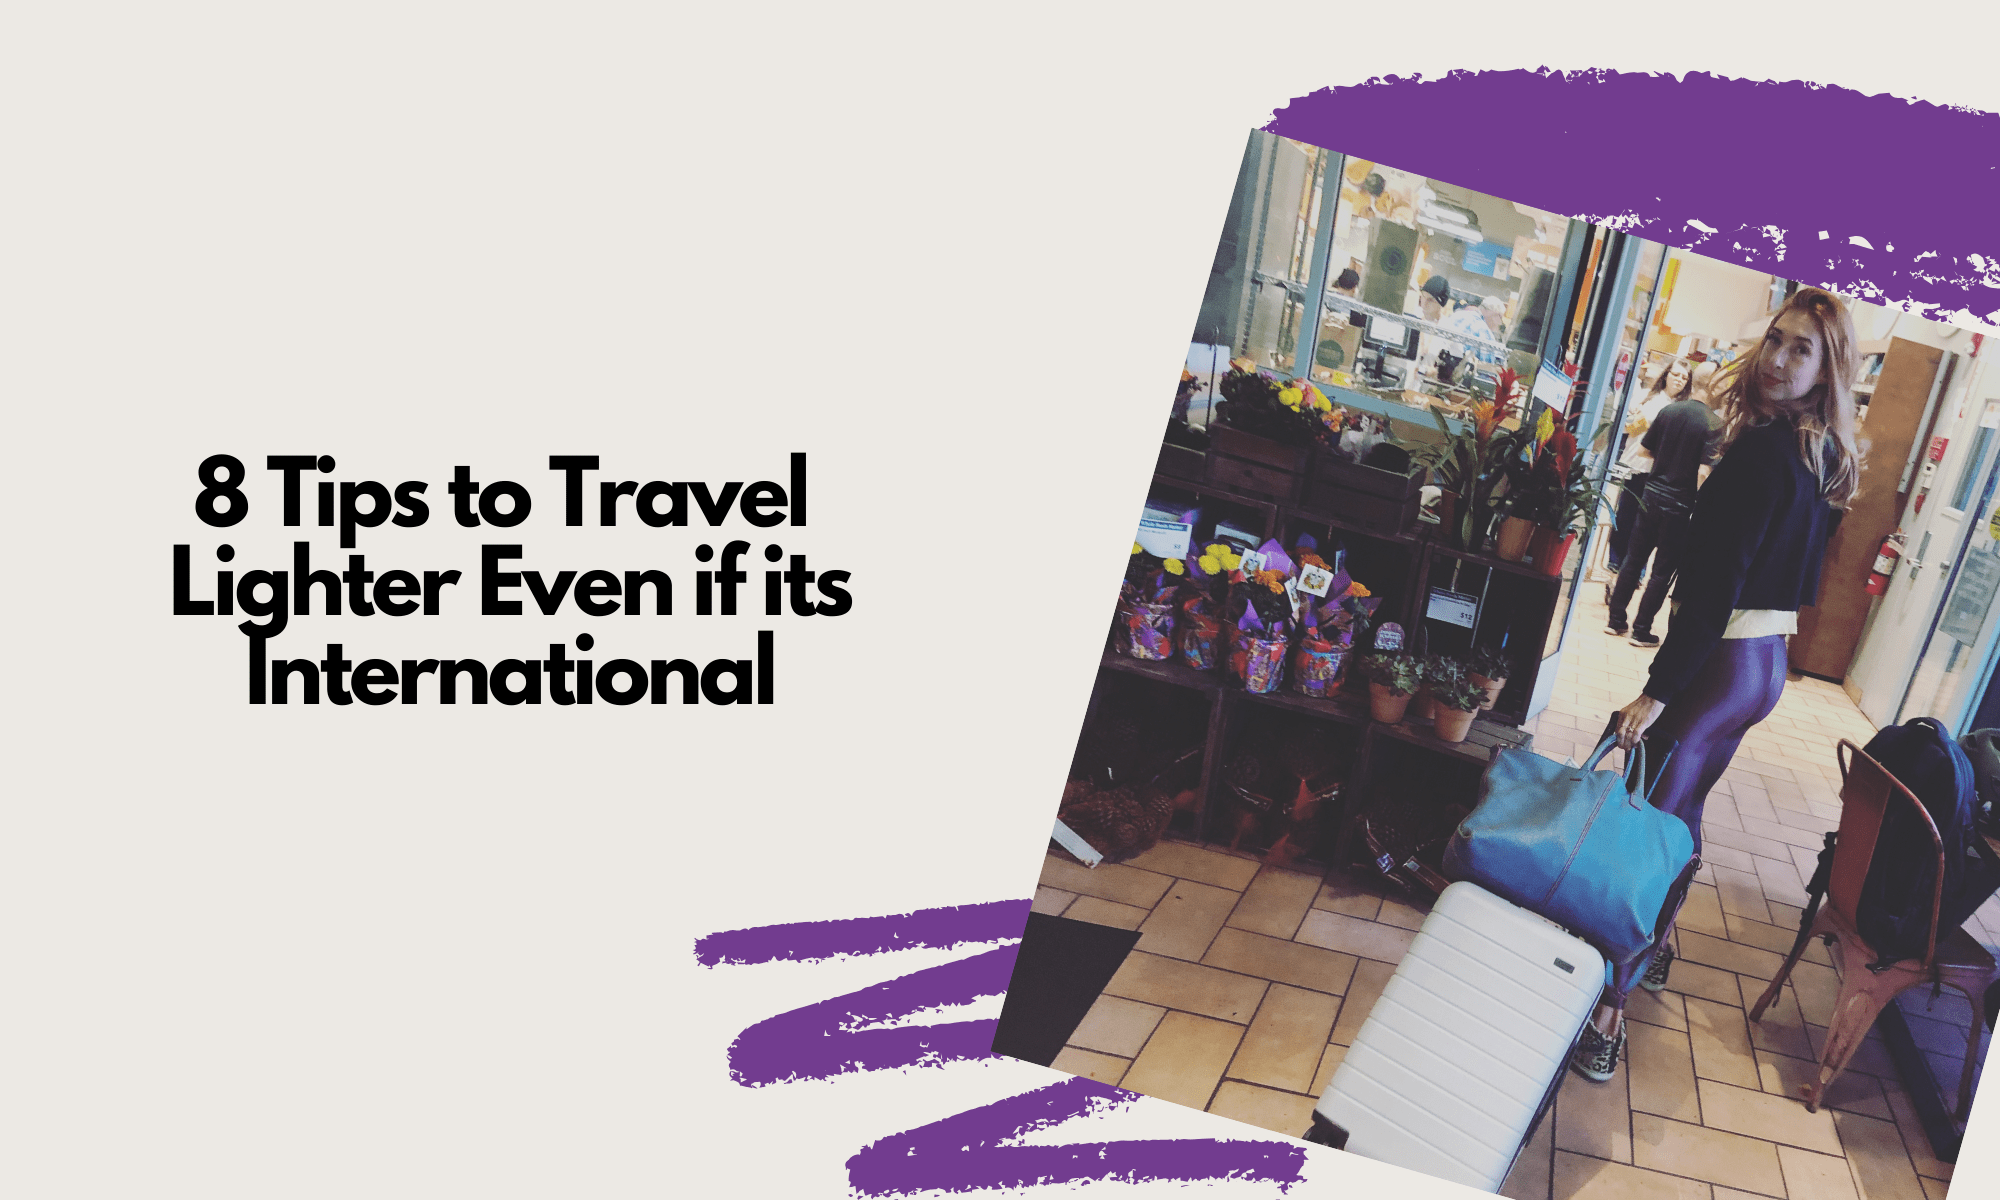 8 Tips to Travel Lighter Even if its International